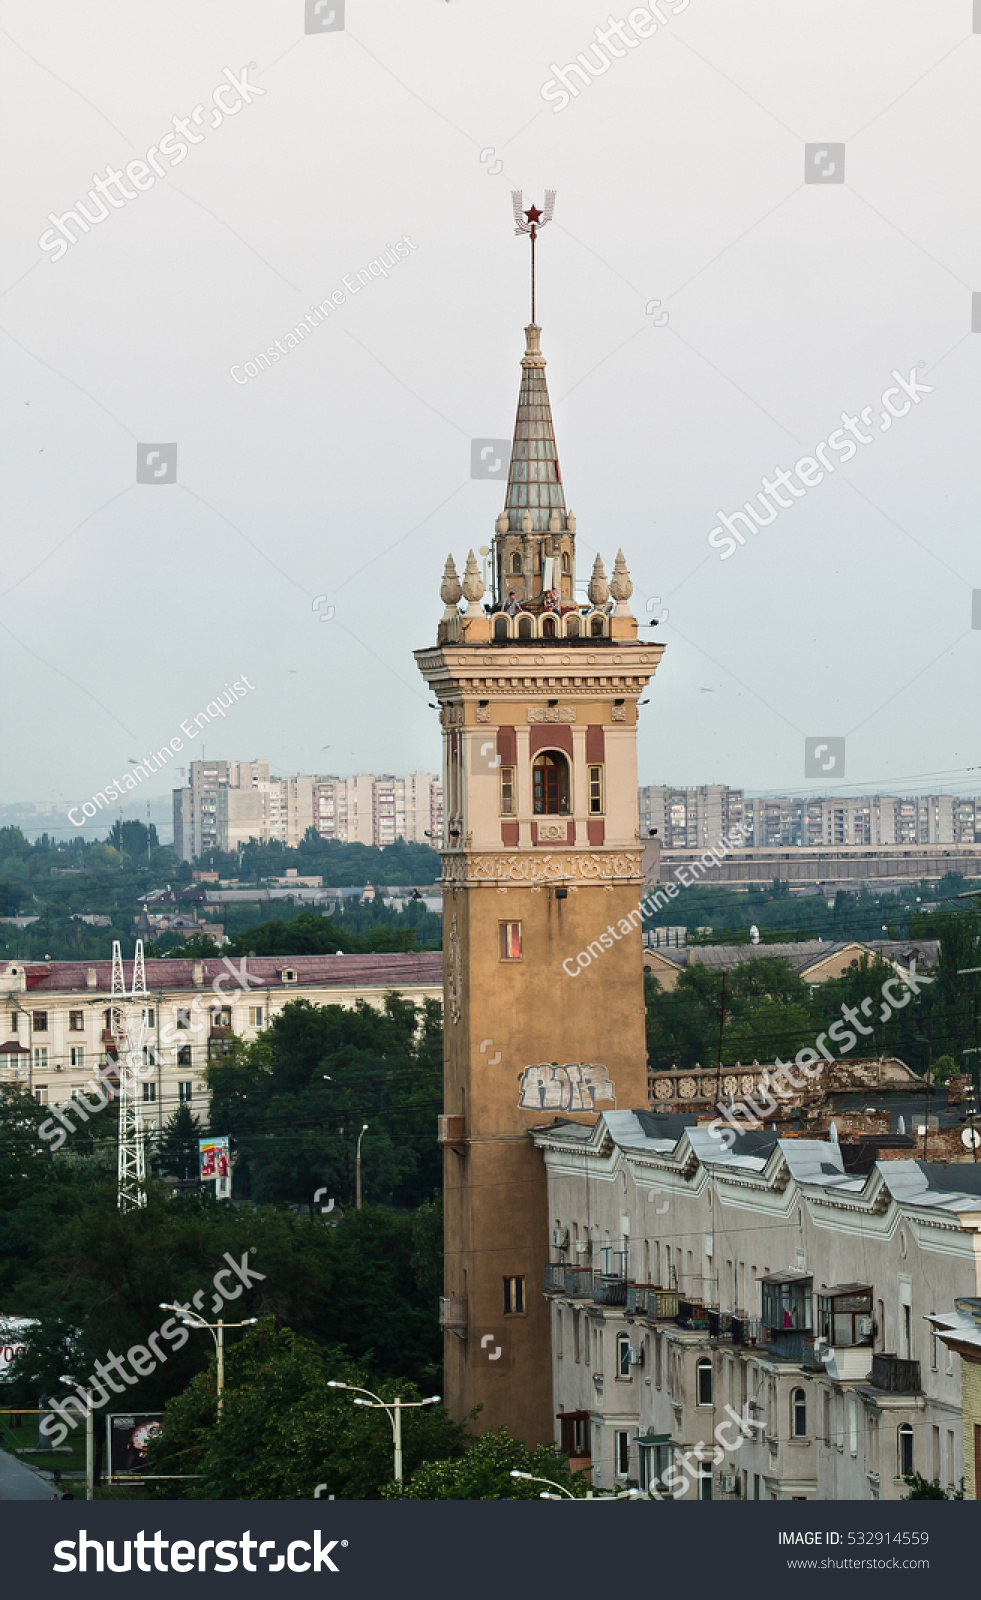 Theaters of Zaporozhye: a selection of sites